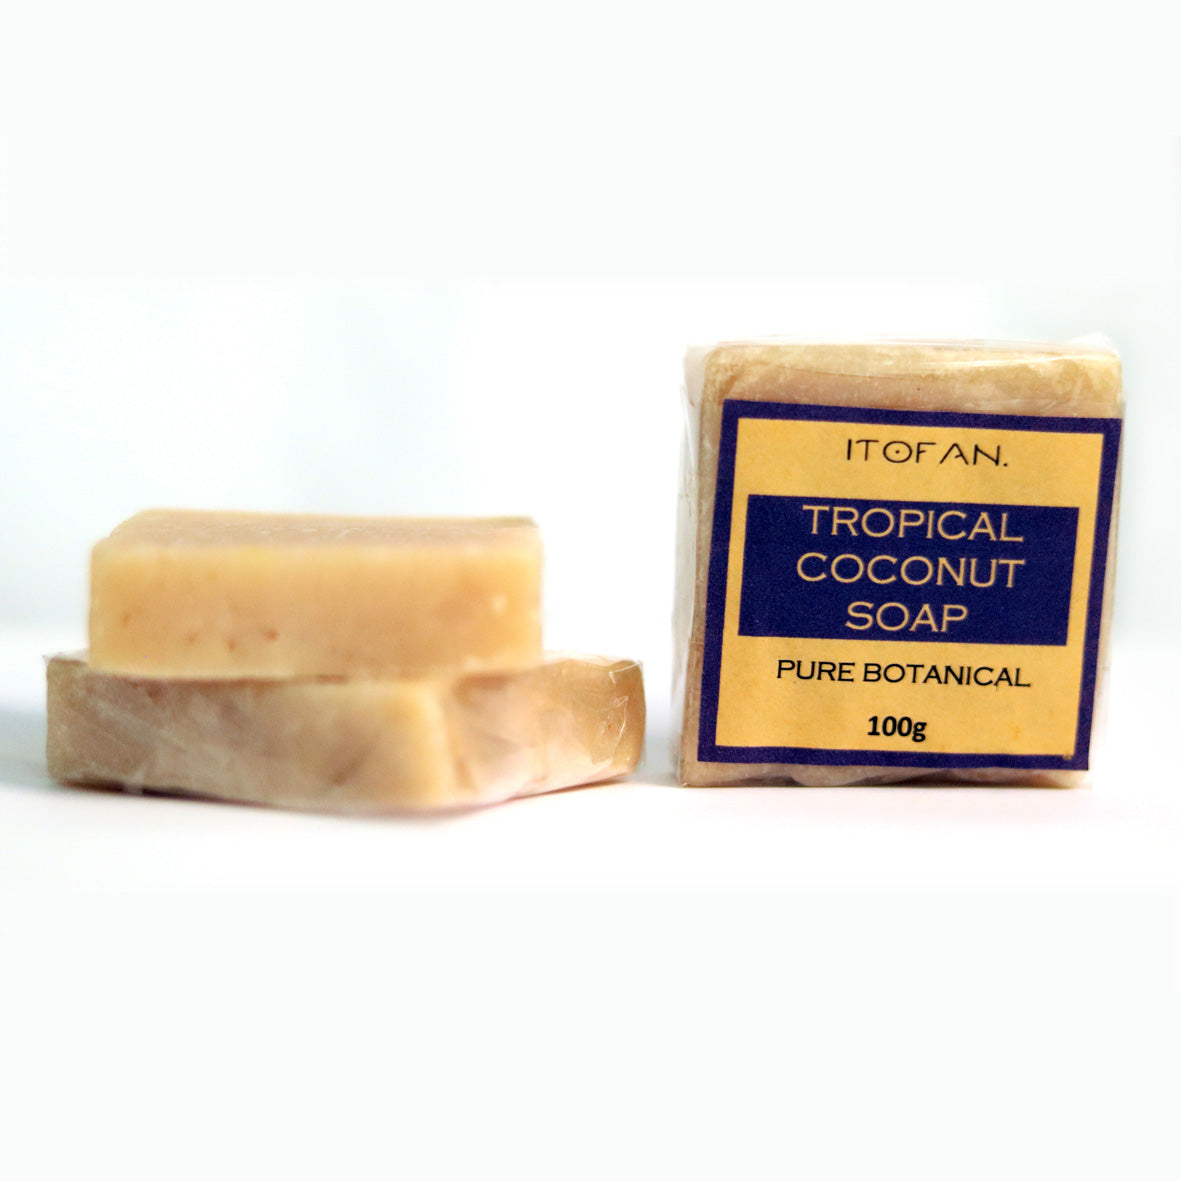 Tropical Coconut Soap Bar